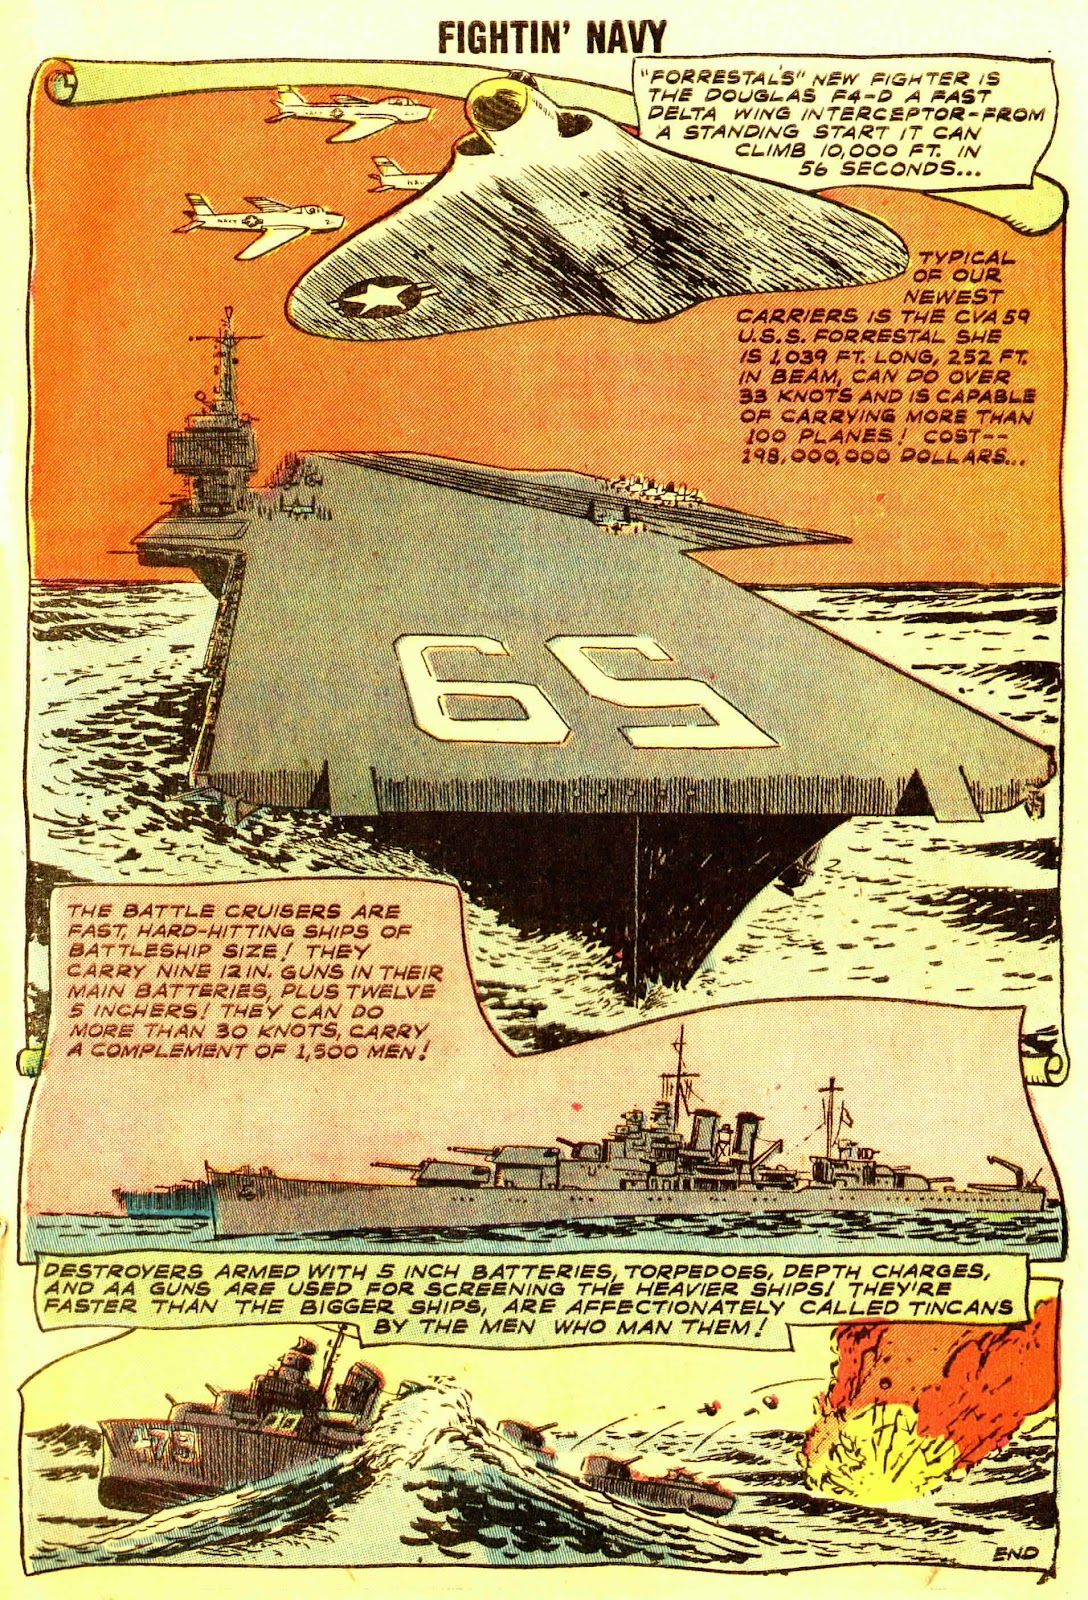 Read online Fightin' Navy comic -  Issue #83 - 17